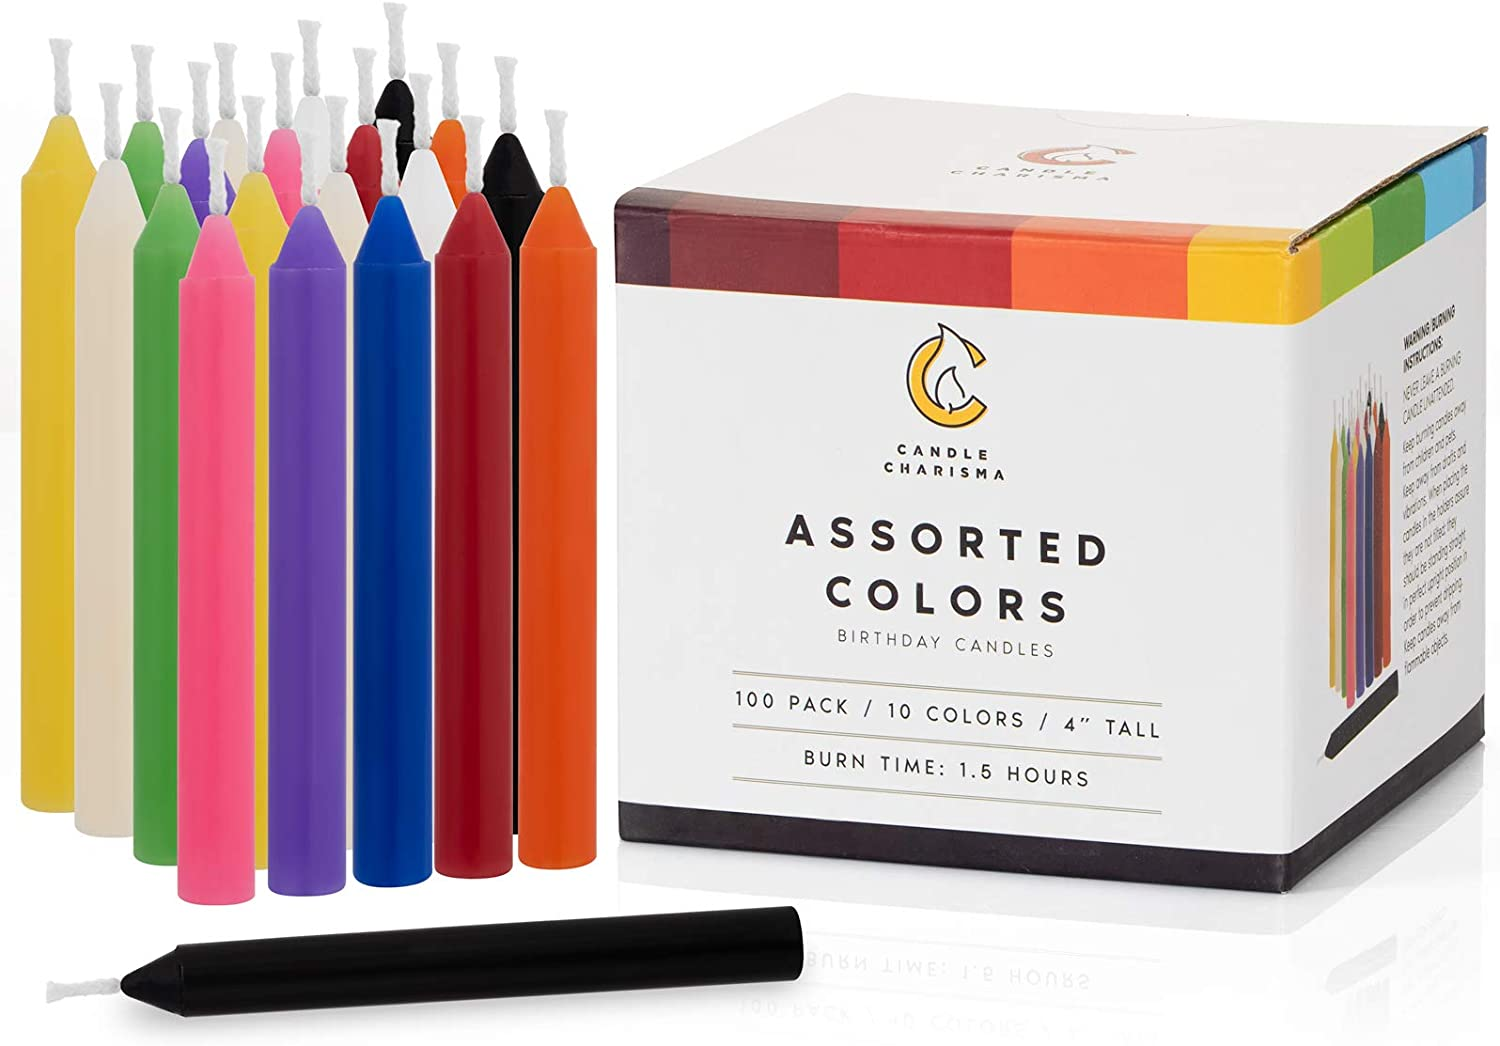 100 Assorted Colors Spell Candles Small Dripless for Chimes, Magic, Congregation, Vigil Candlelight, Rituals, Party Decorations (10 Colors) 4 Inches Tall